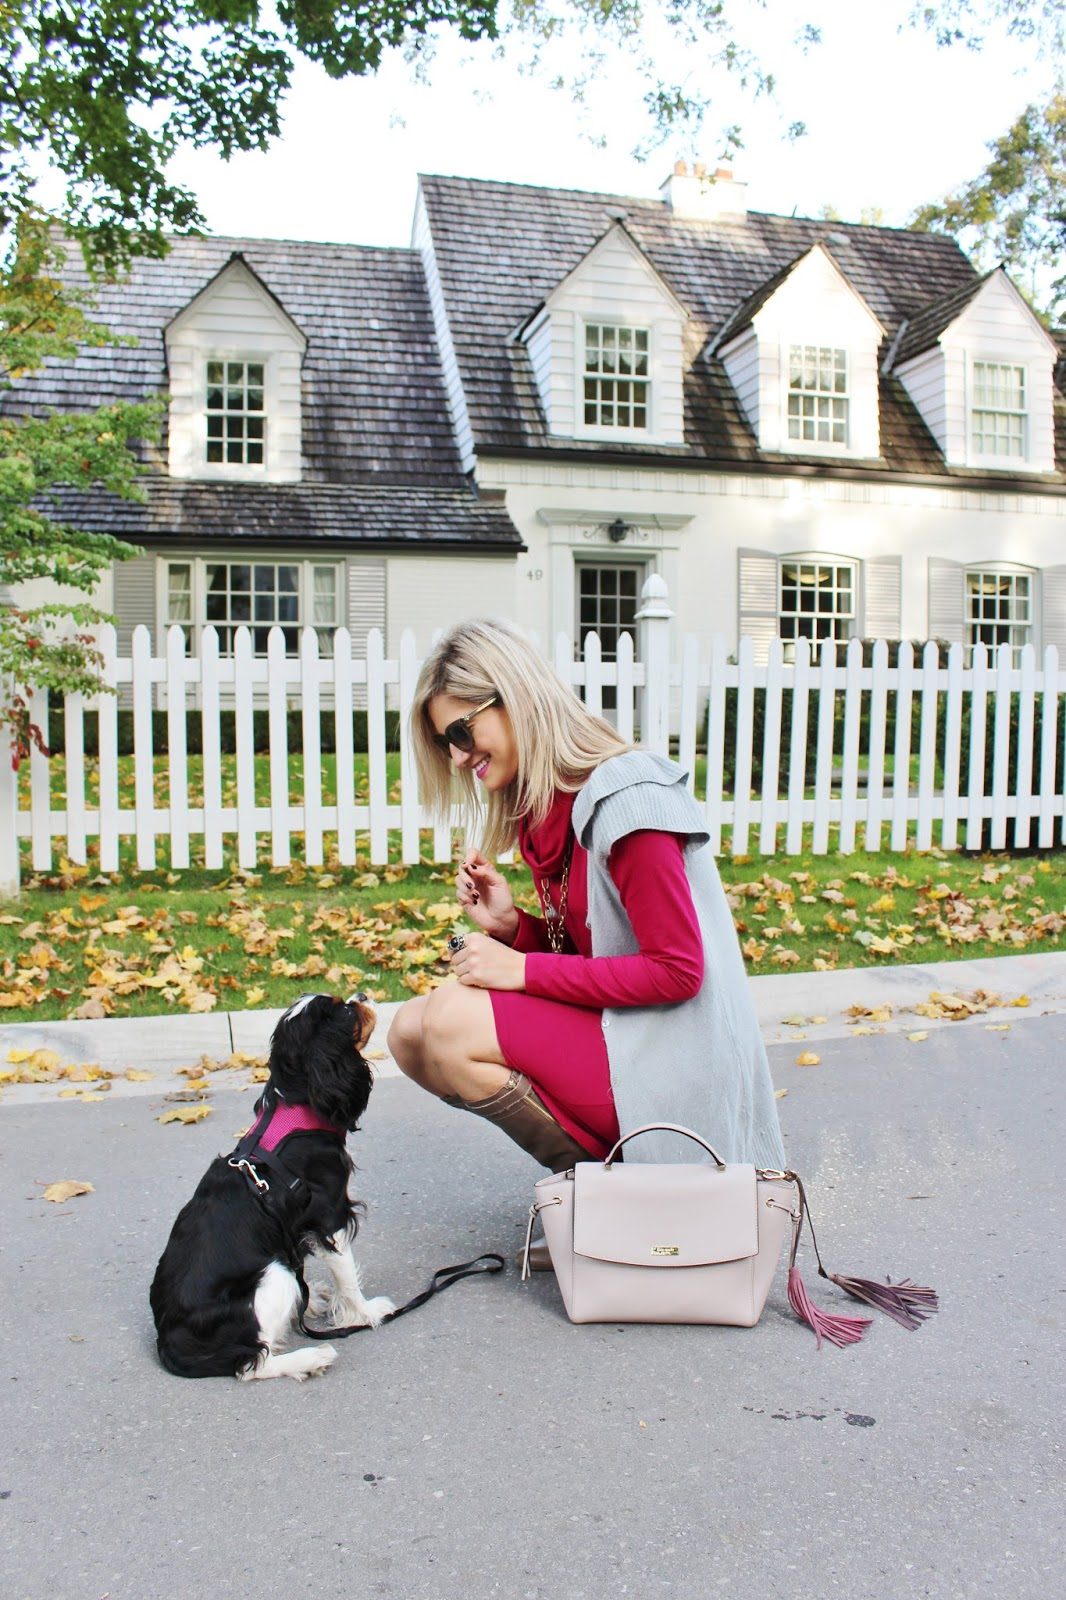 Bijuleni - Miik Cowl Pocket Cranberry Dress with Grey Sweater Vest, Ann Taylor Ankle Boots, Kate Spade handbag